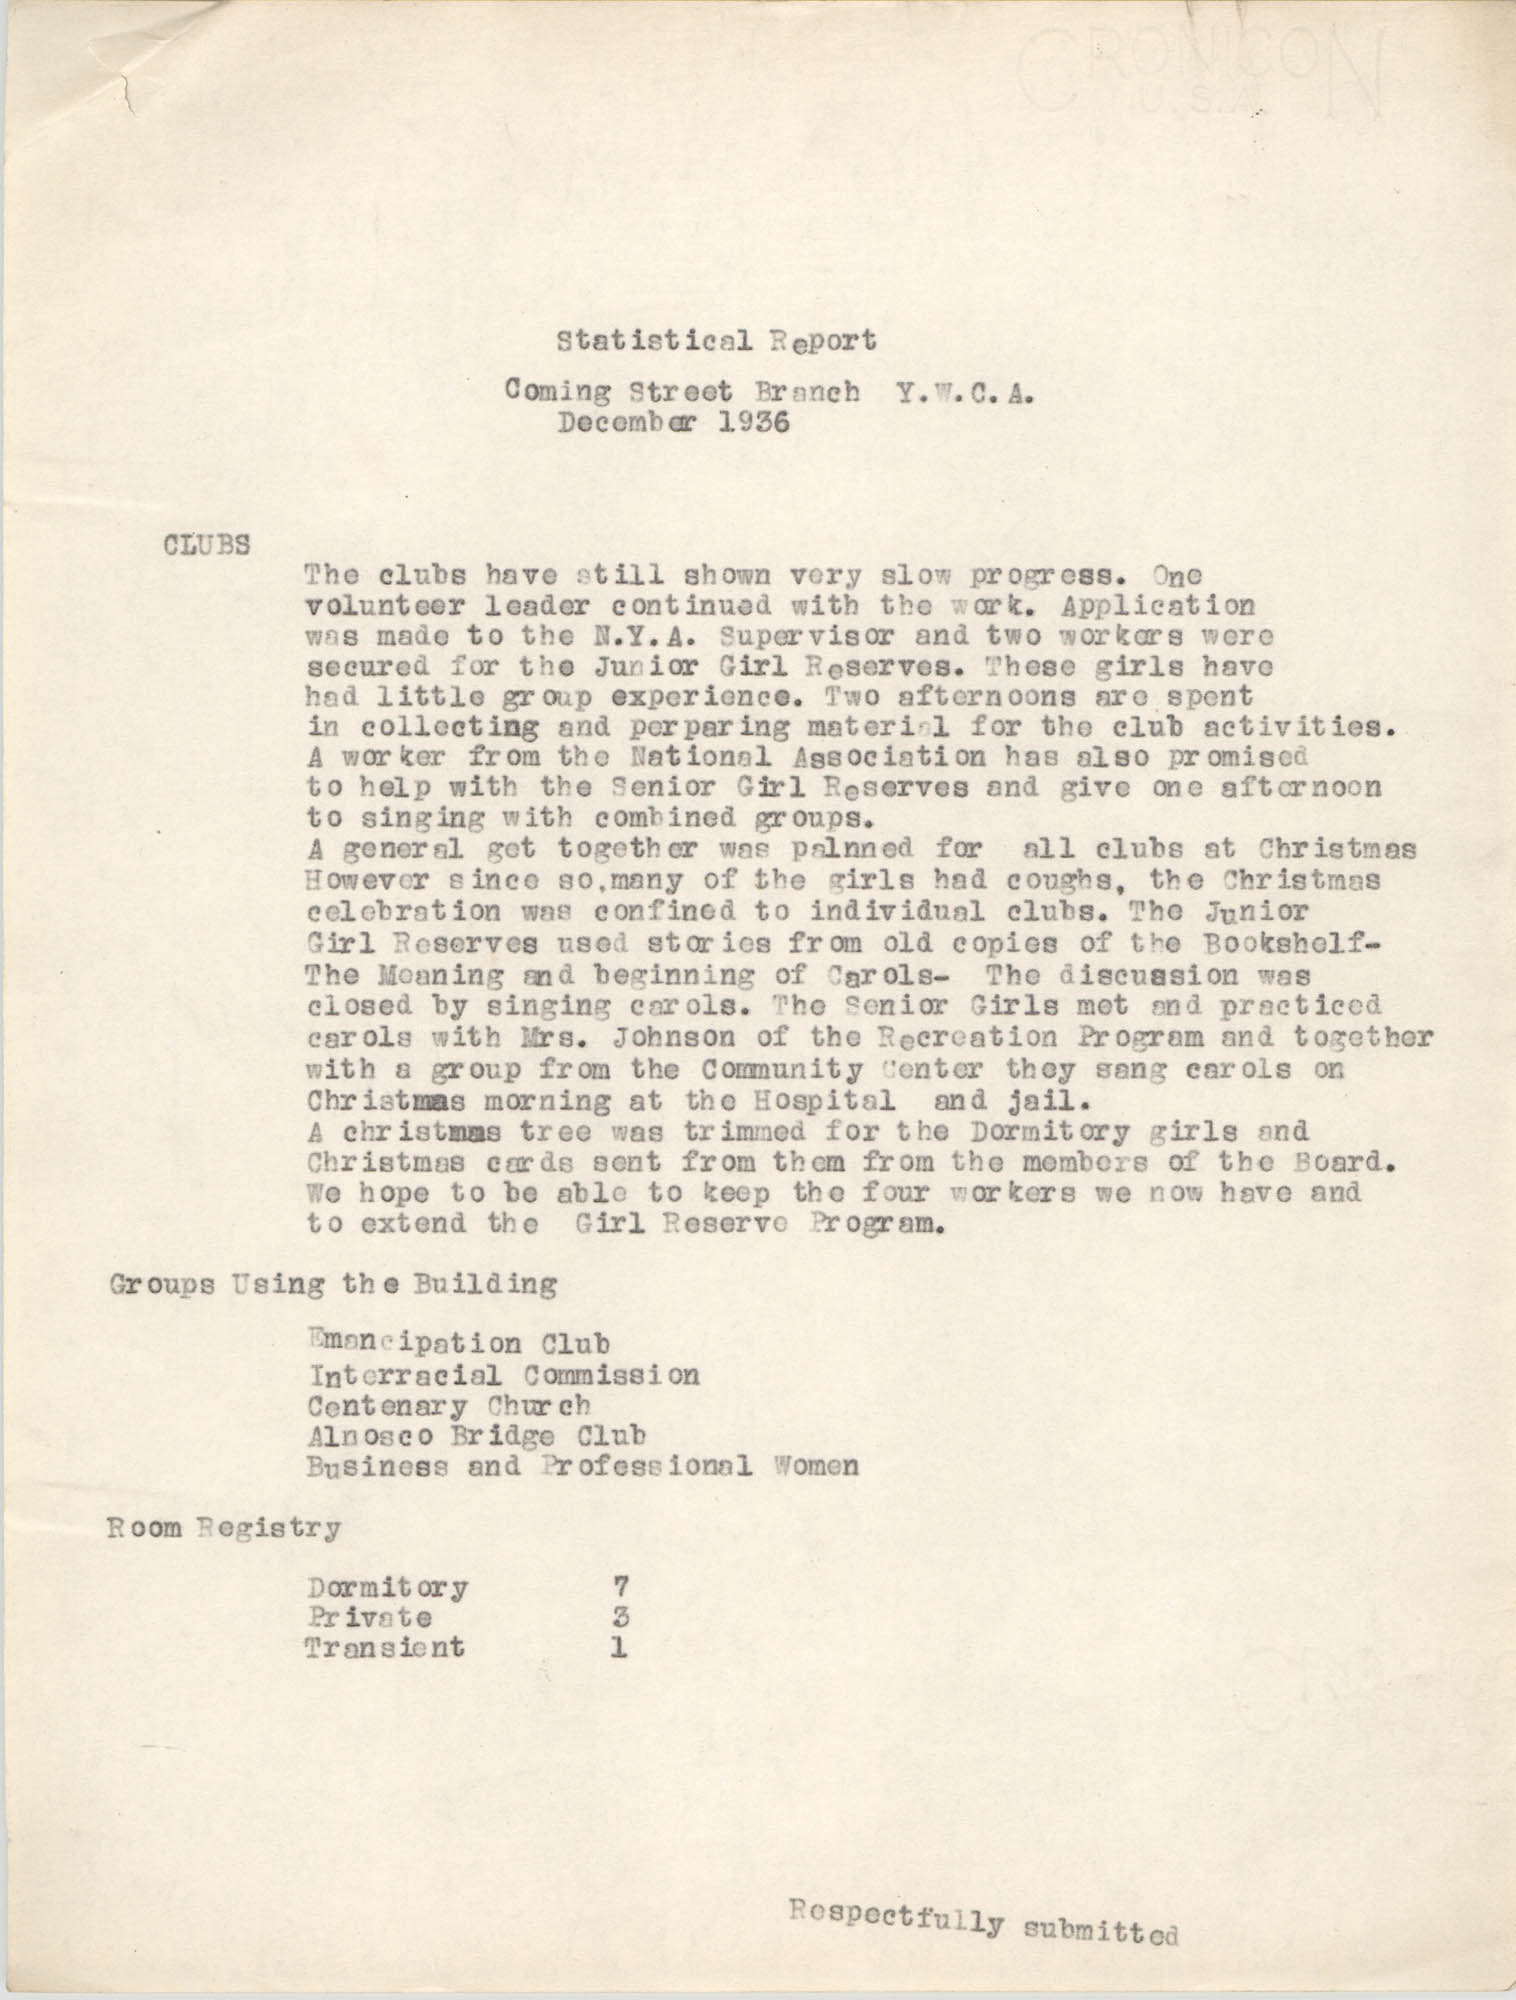 Monthly Report for the Coming Street Y.W.C.A., December 1936